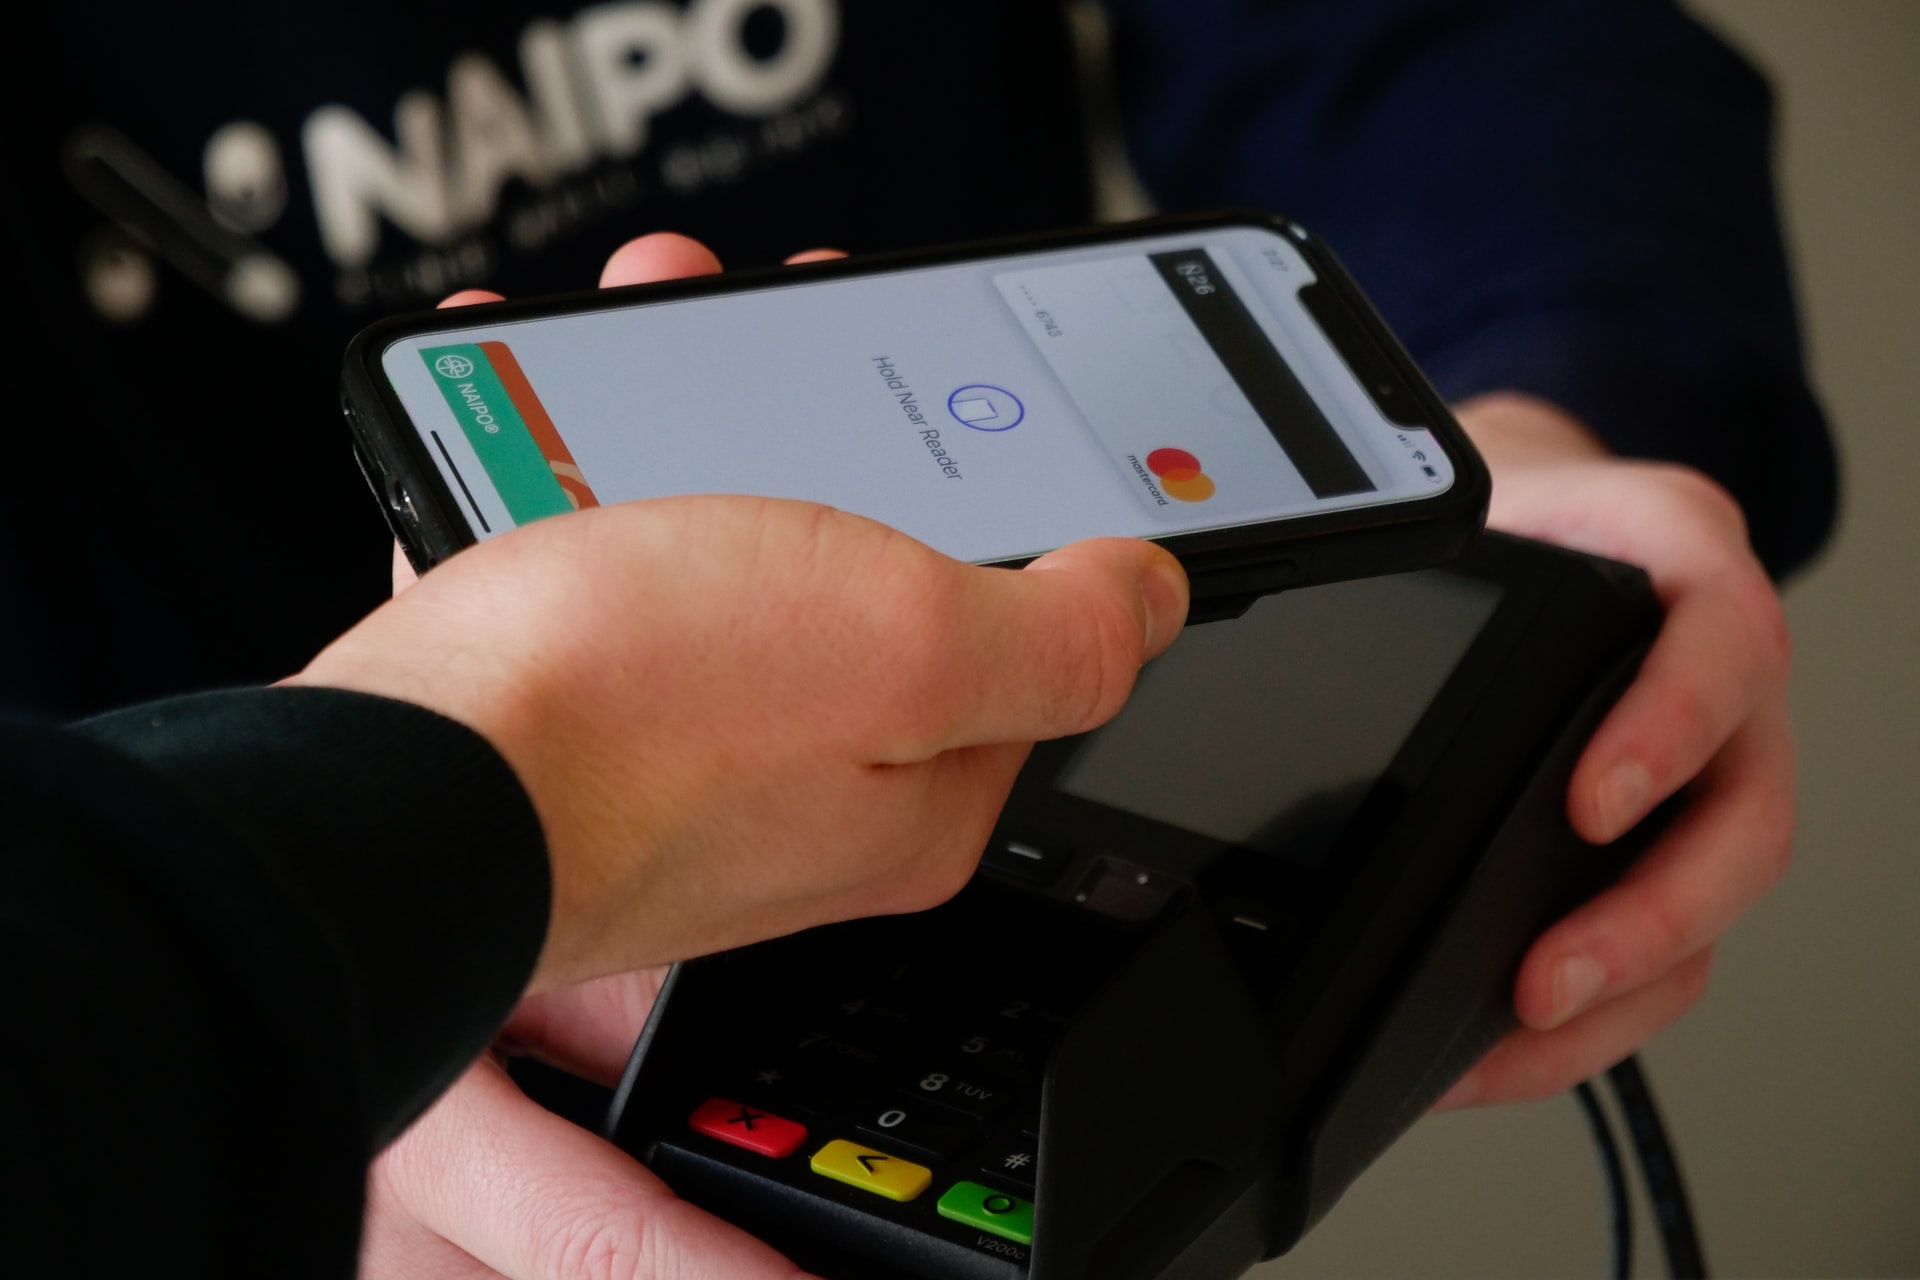 Benefits of Using Apple Pay And Steps For Deposition